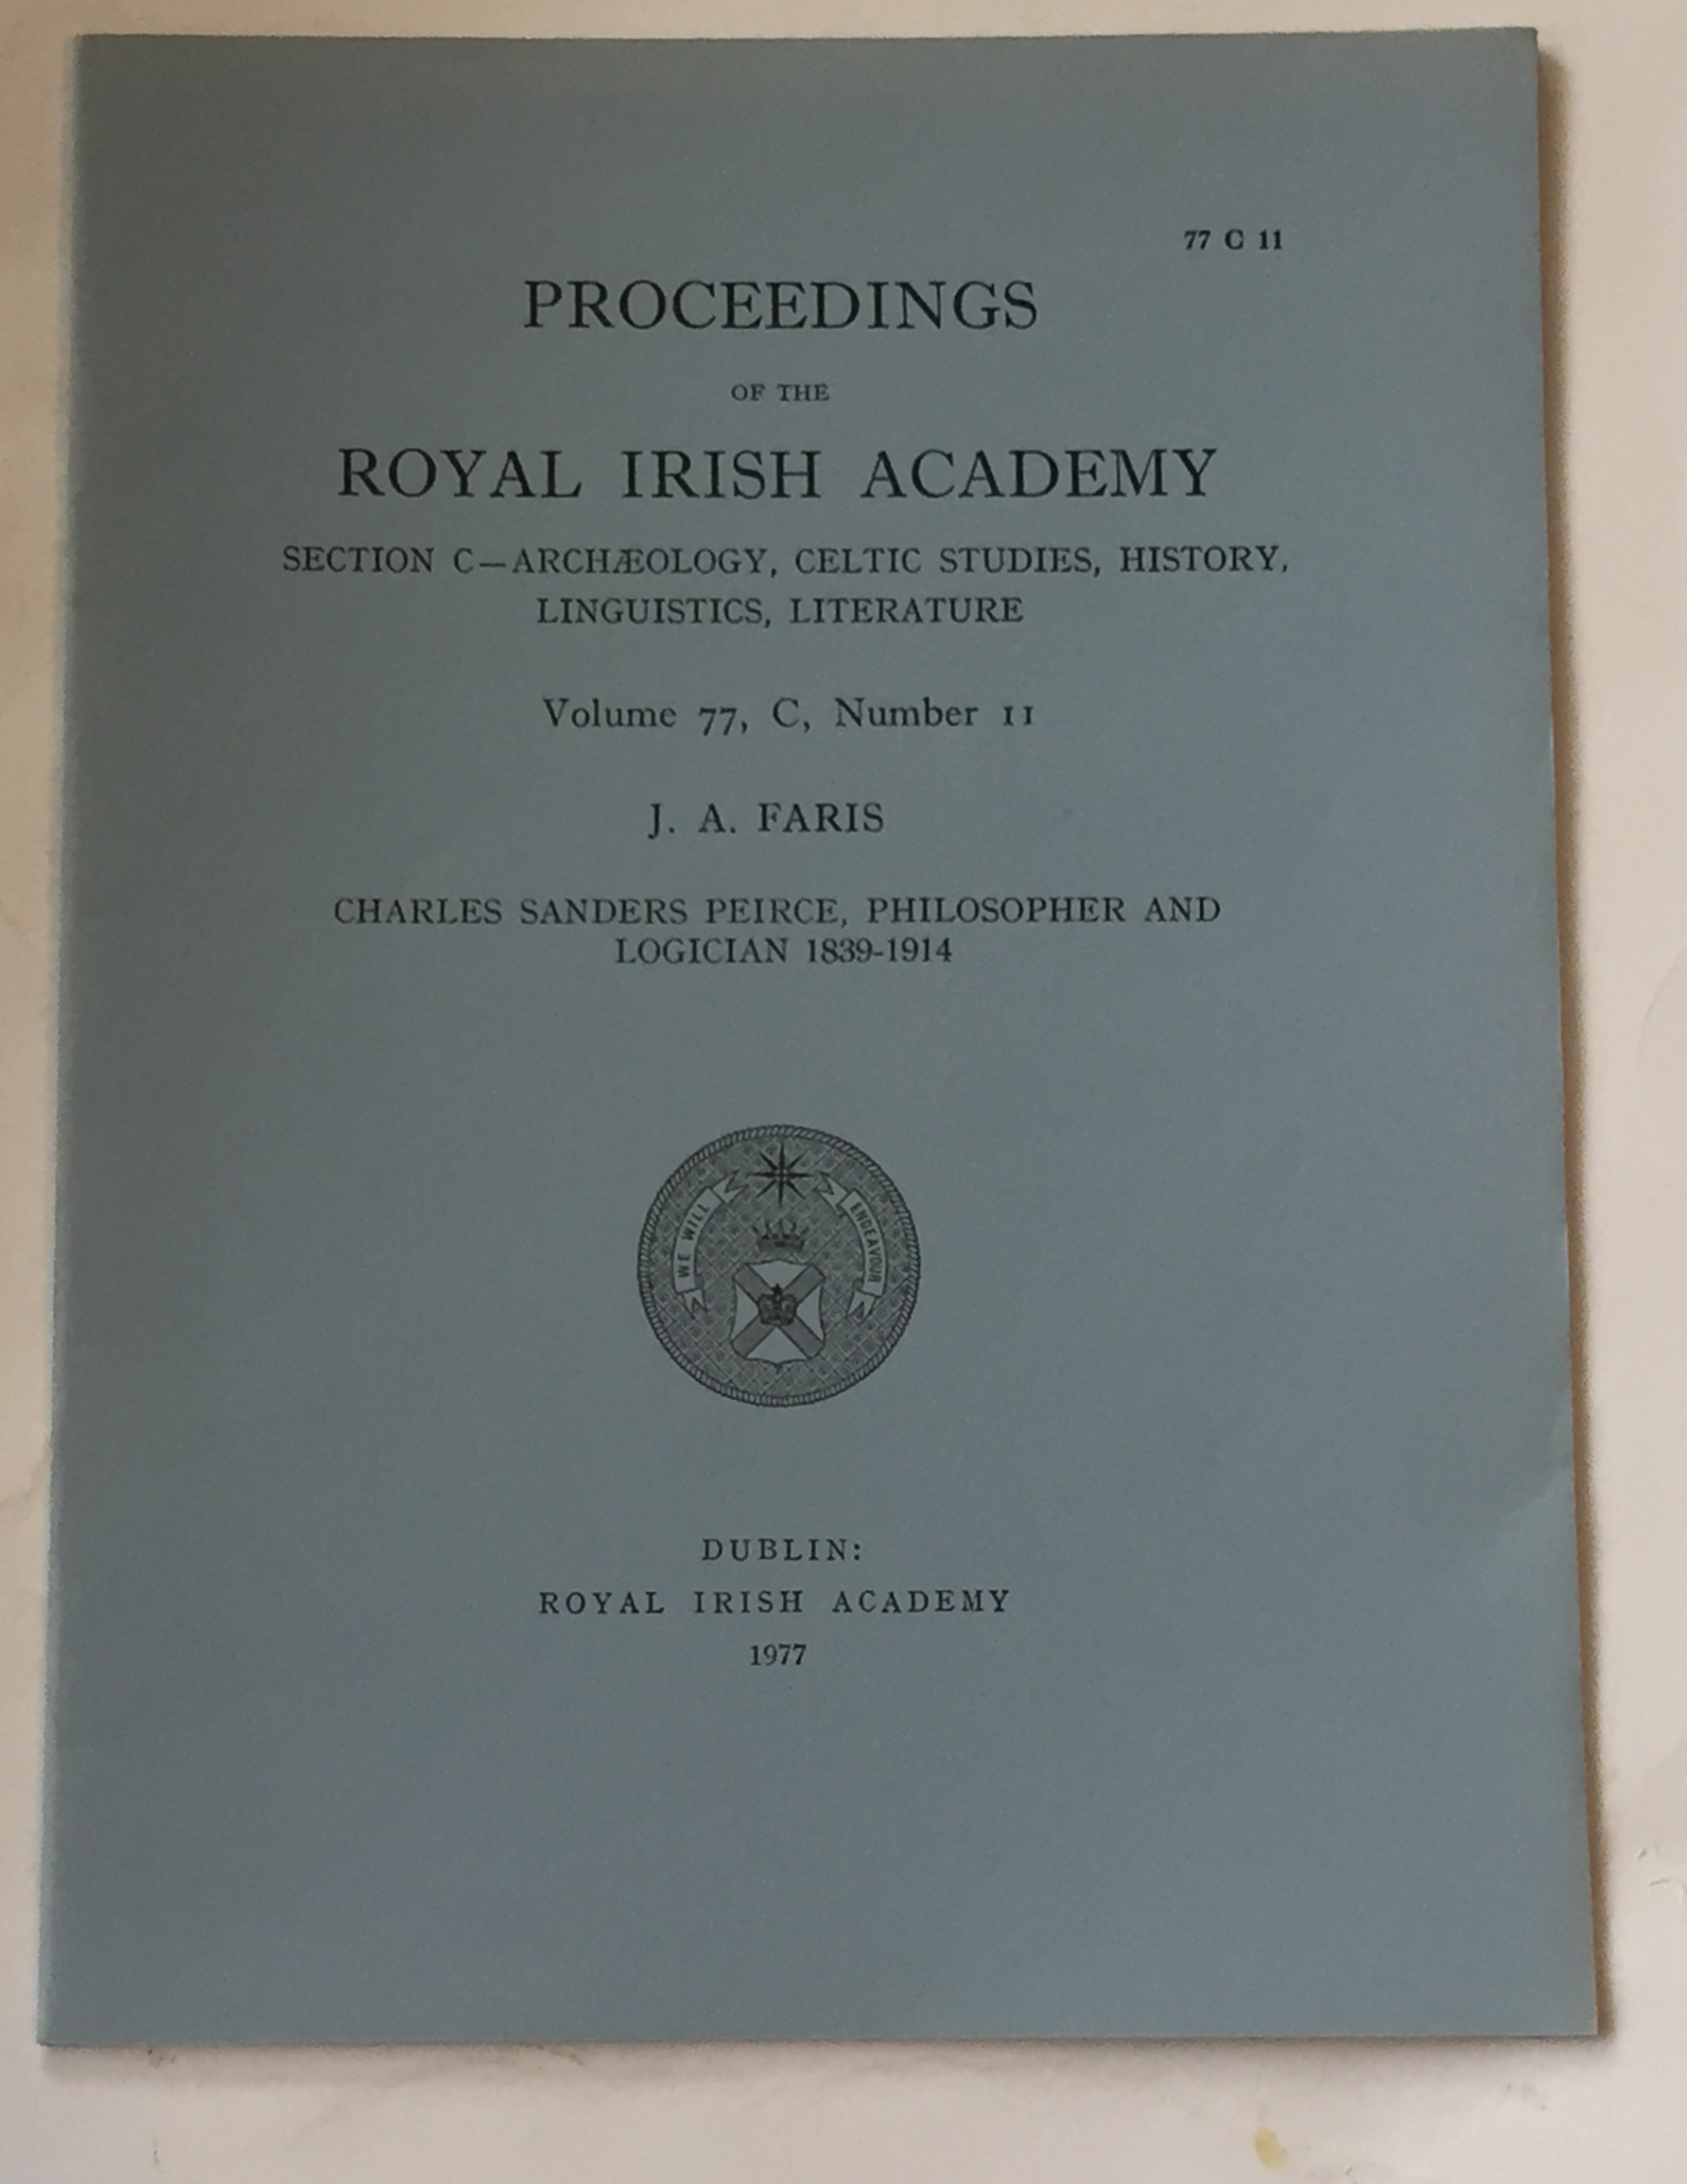 Image for Proceedings of the Royal Irish Academy, Volume 77, Section C, No. 11 :Charles Sanders Peirce, Philosopher and Logician 1839-1914